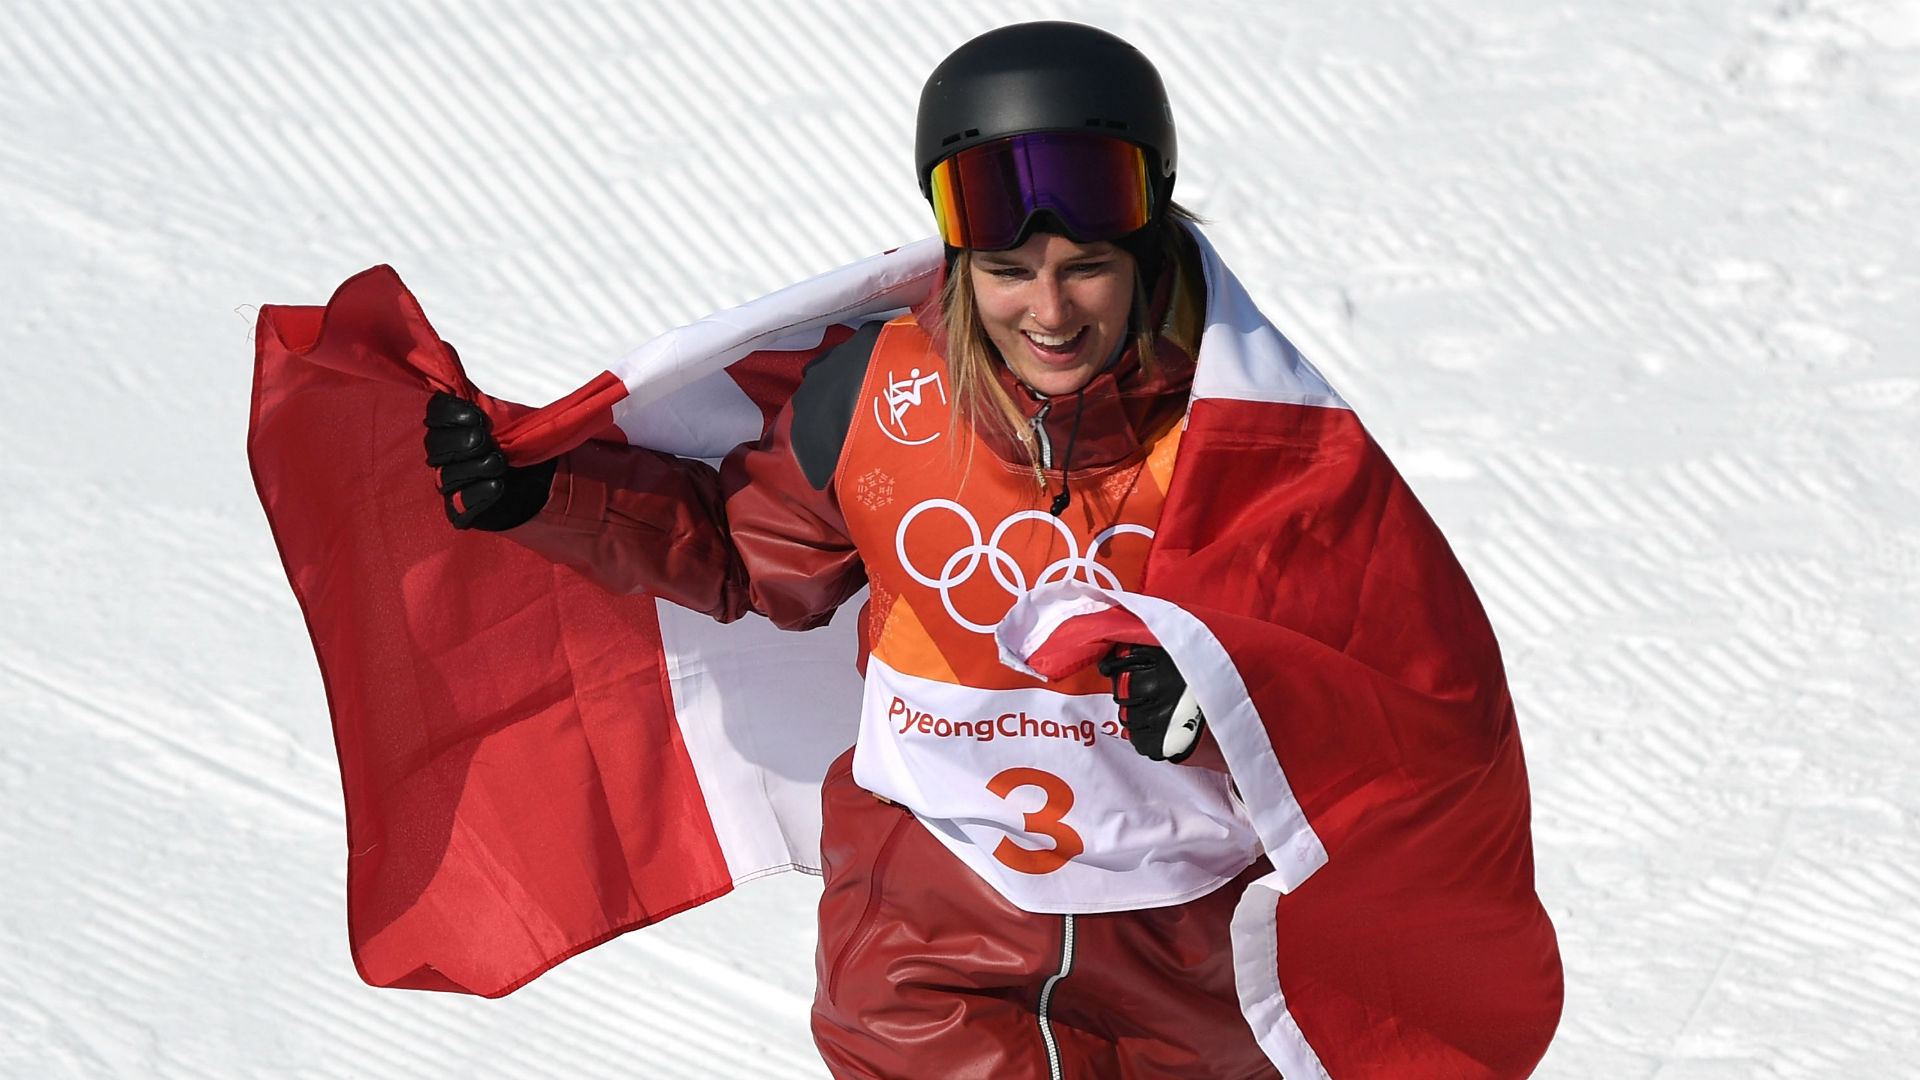 Tahoe-trained Brita Sigourney takes bronze in halfpipe